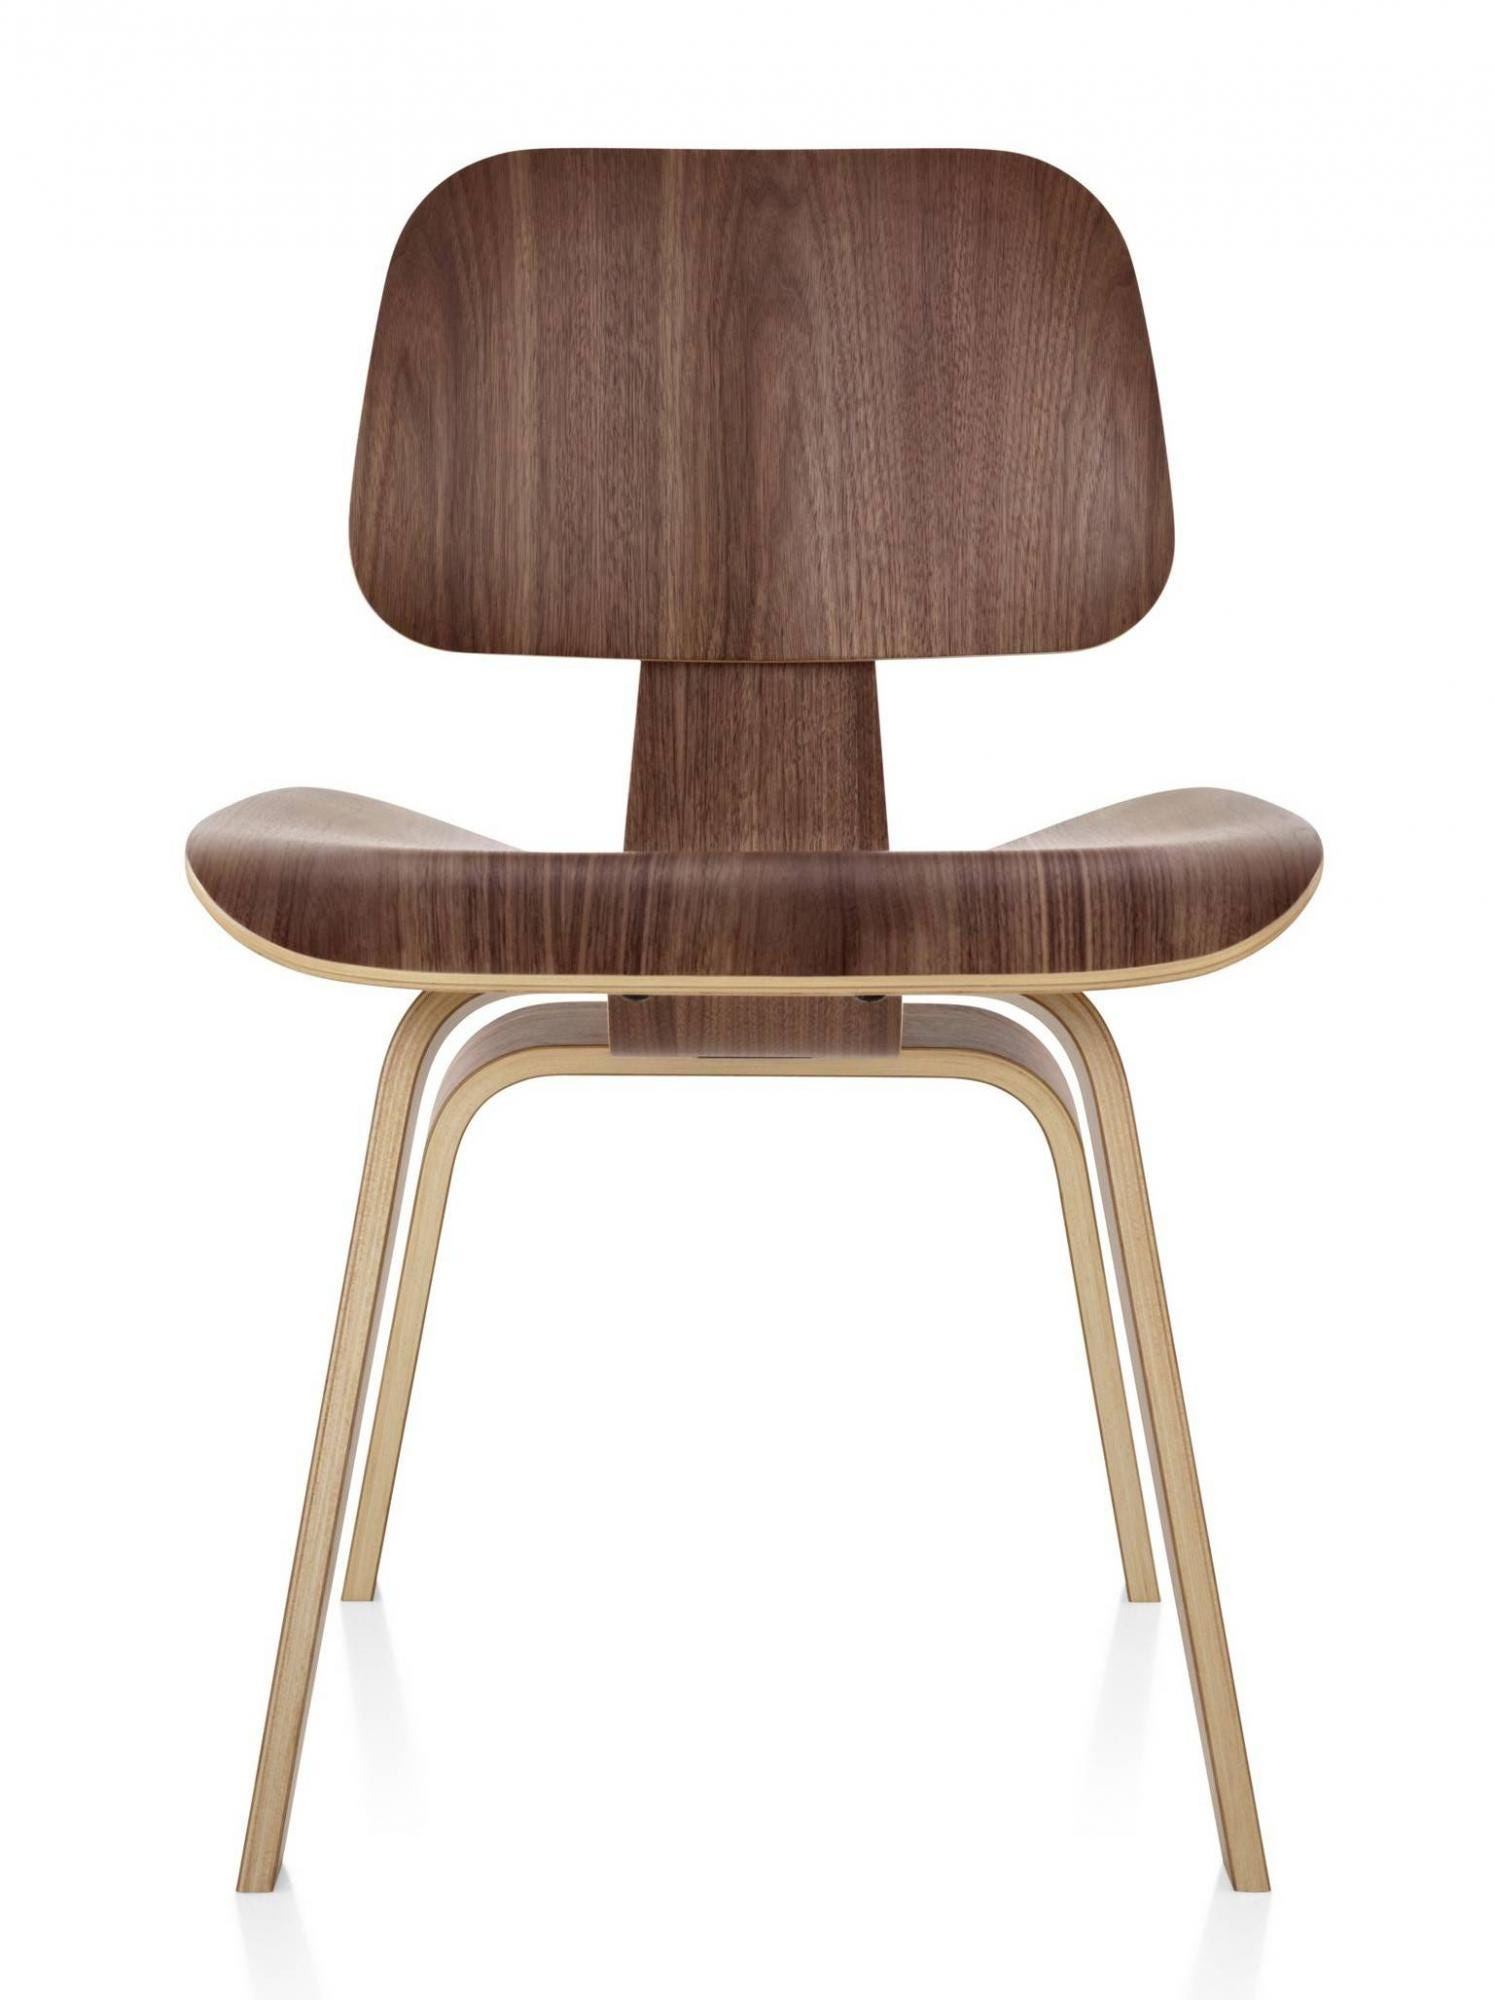 Herman Miller Eames 174 Molded Plywood Dining Chair Wood Legs